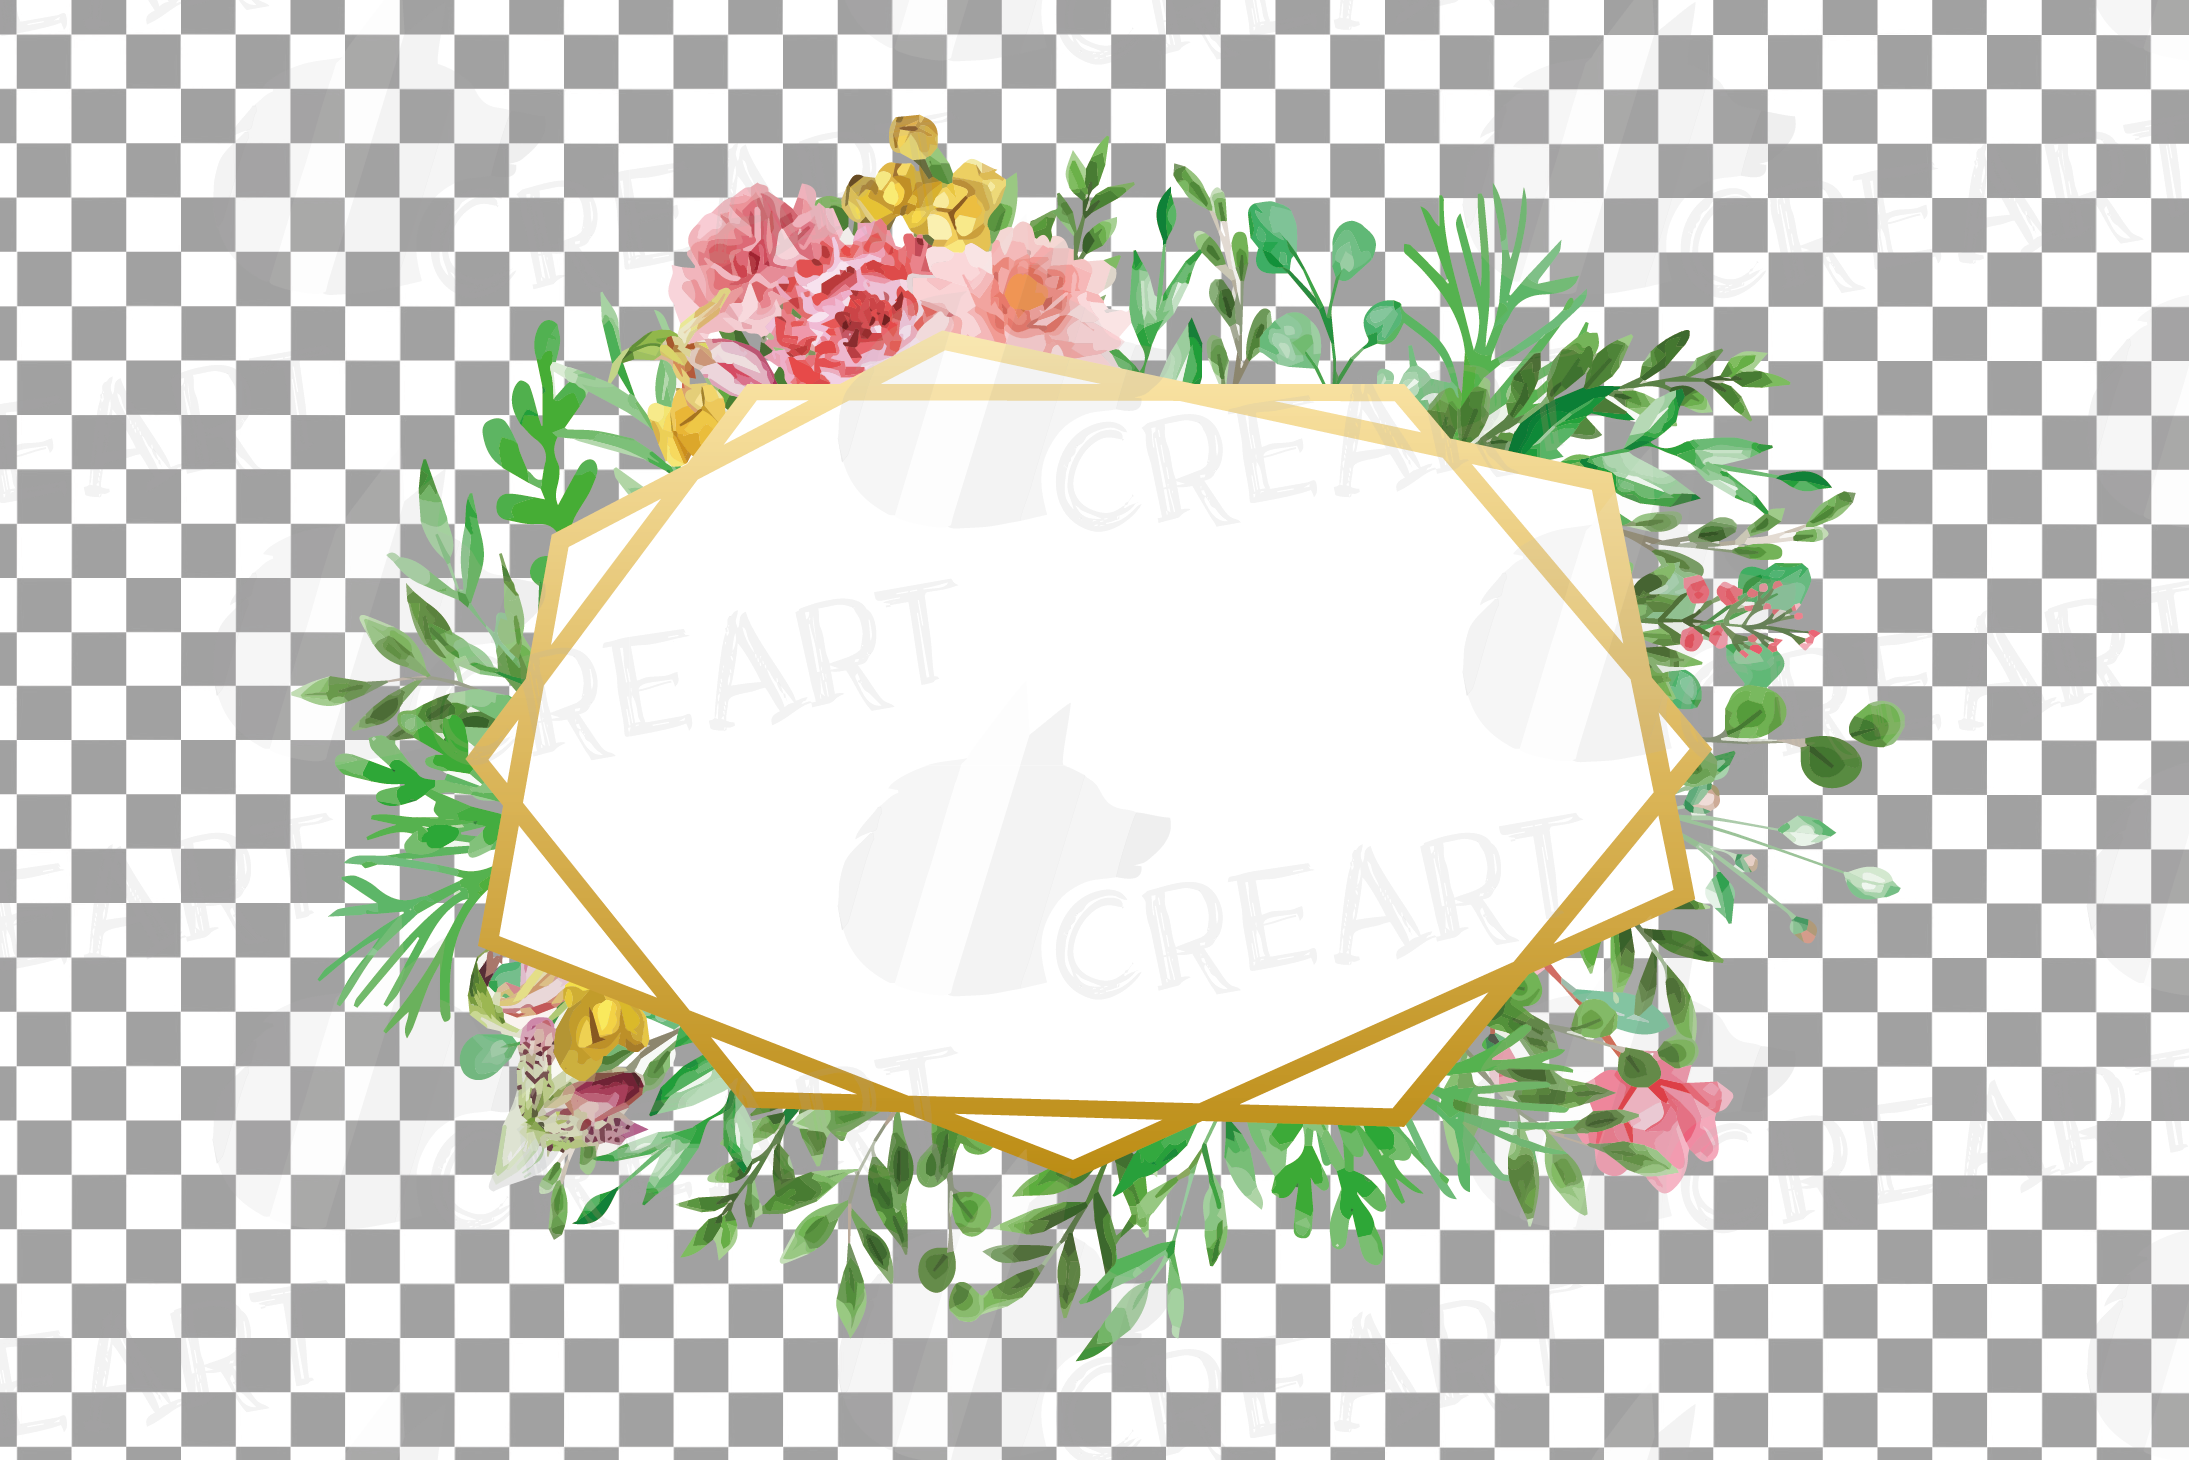 Watercolor floral floral frames and borders clip art pack example image 20